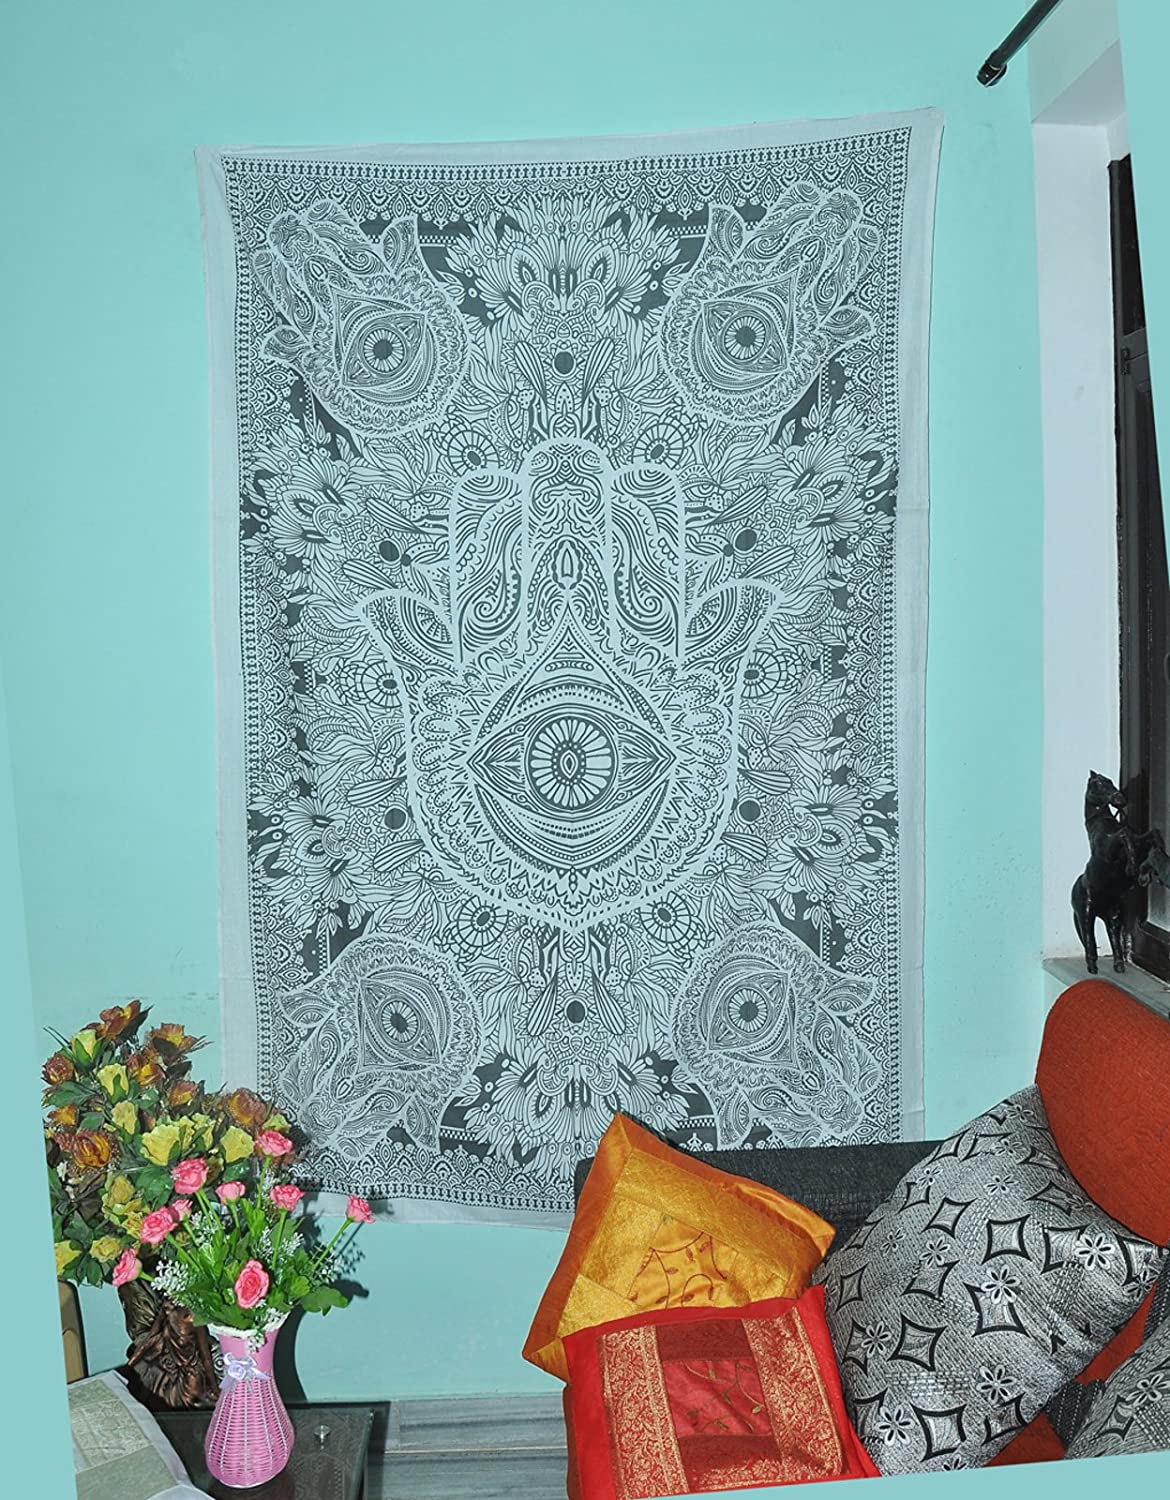 Exclusive Hamsa Hand Tapestry For Goodluck Indian Mandala Wall Art Hippie Wall Hanging Bohemian Bedspread Throw Urban Sketched Hand Tapestry Dorm Decor Bedding